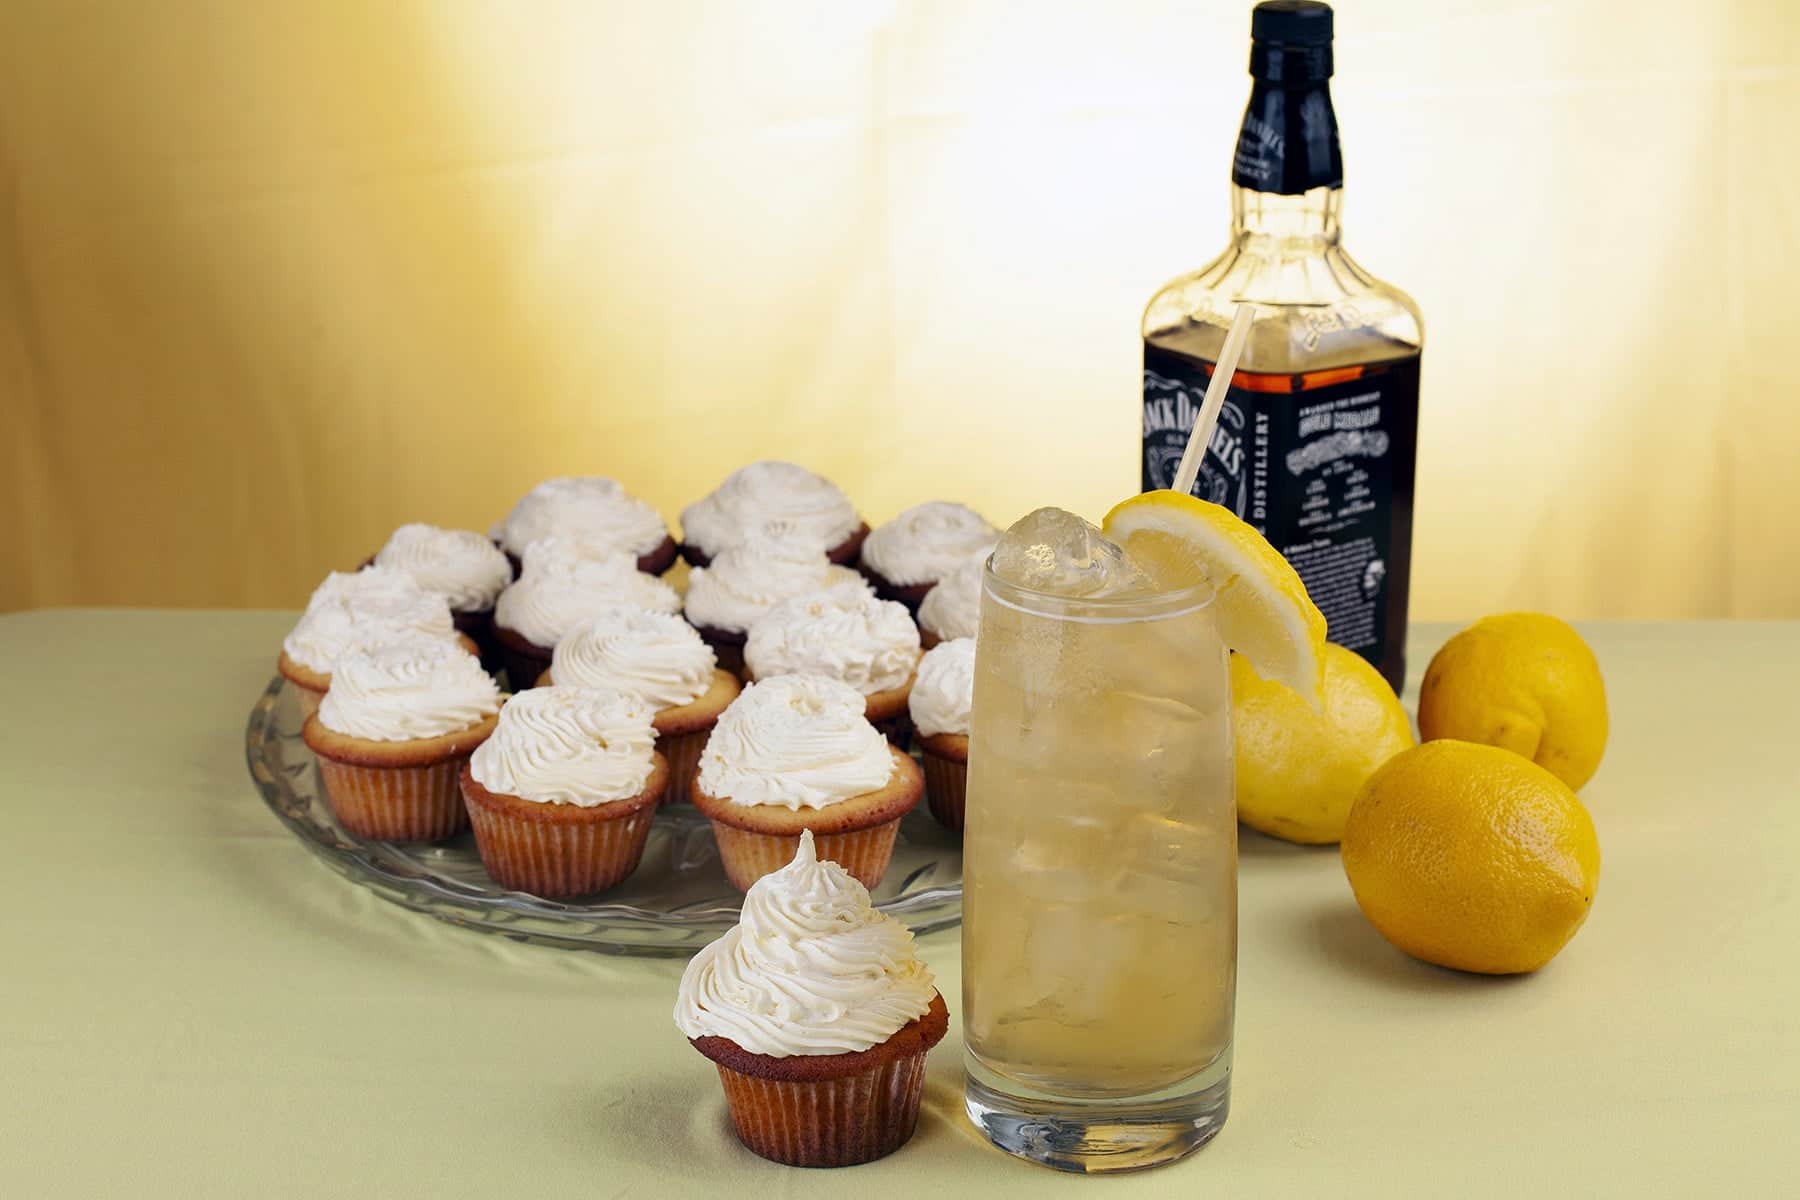 A tray of Lynchburg Lemonade Cupcakes is pictured with a bottle of Jack Daniels, a couple fresh lemons, and a glass of Lynchburg lemonade cocktail.